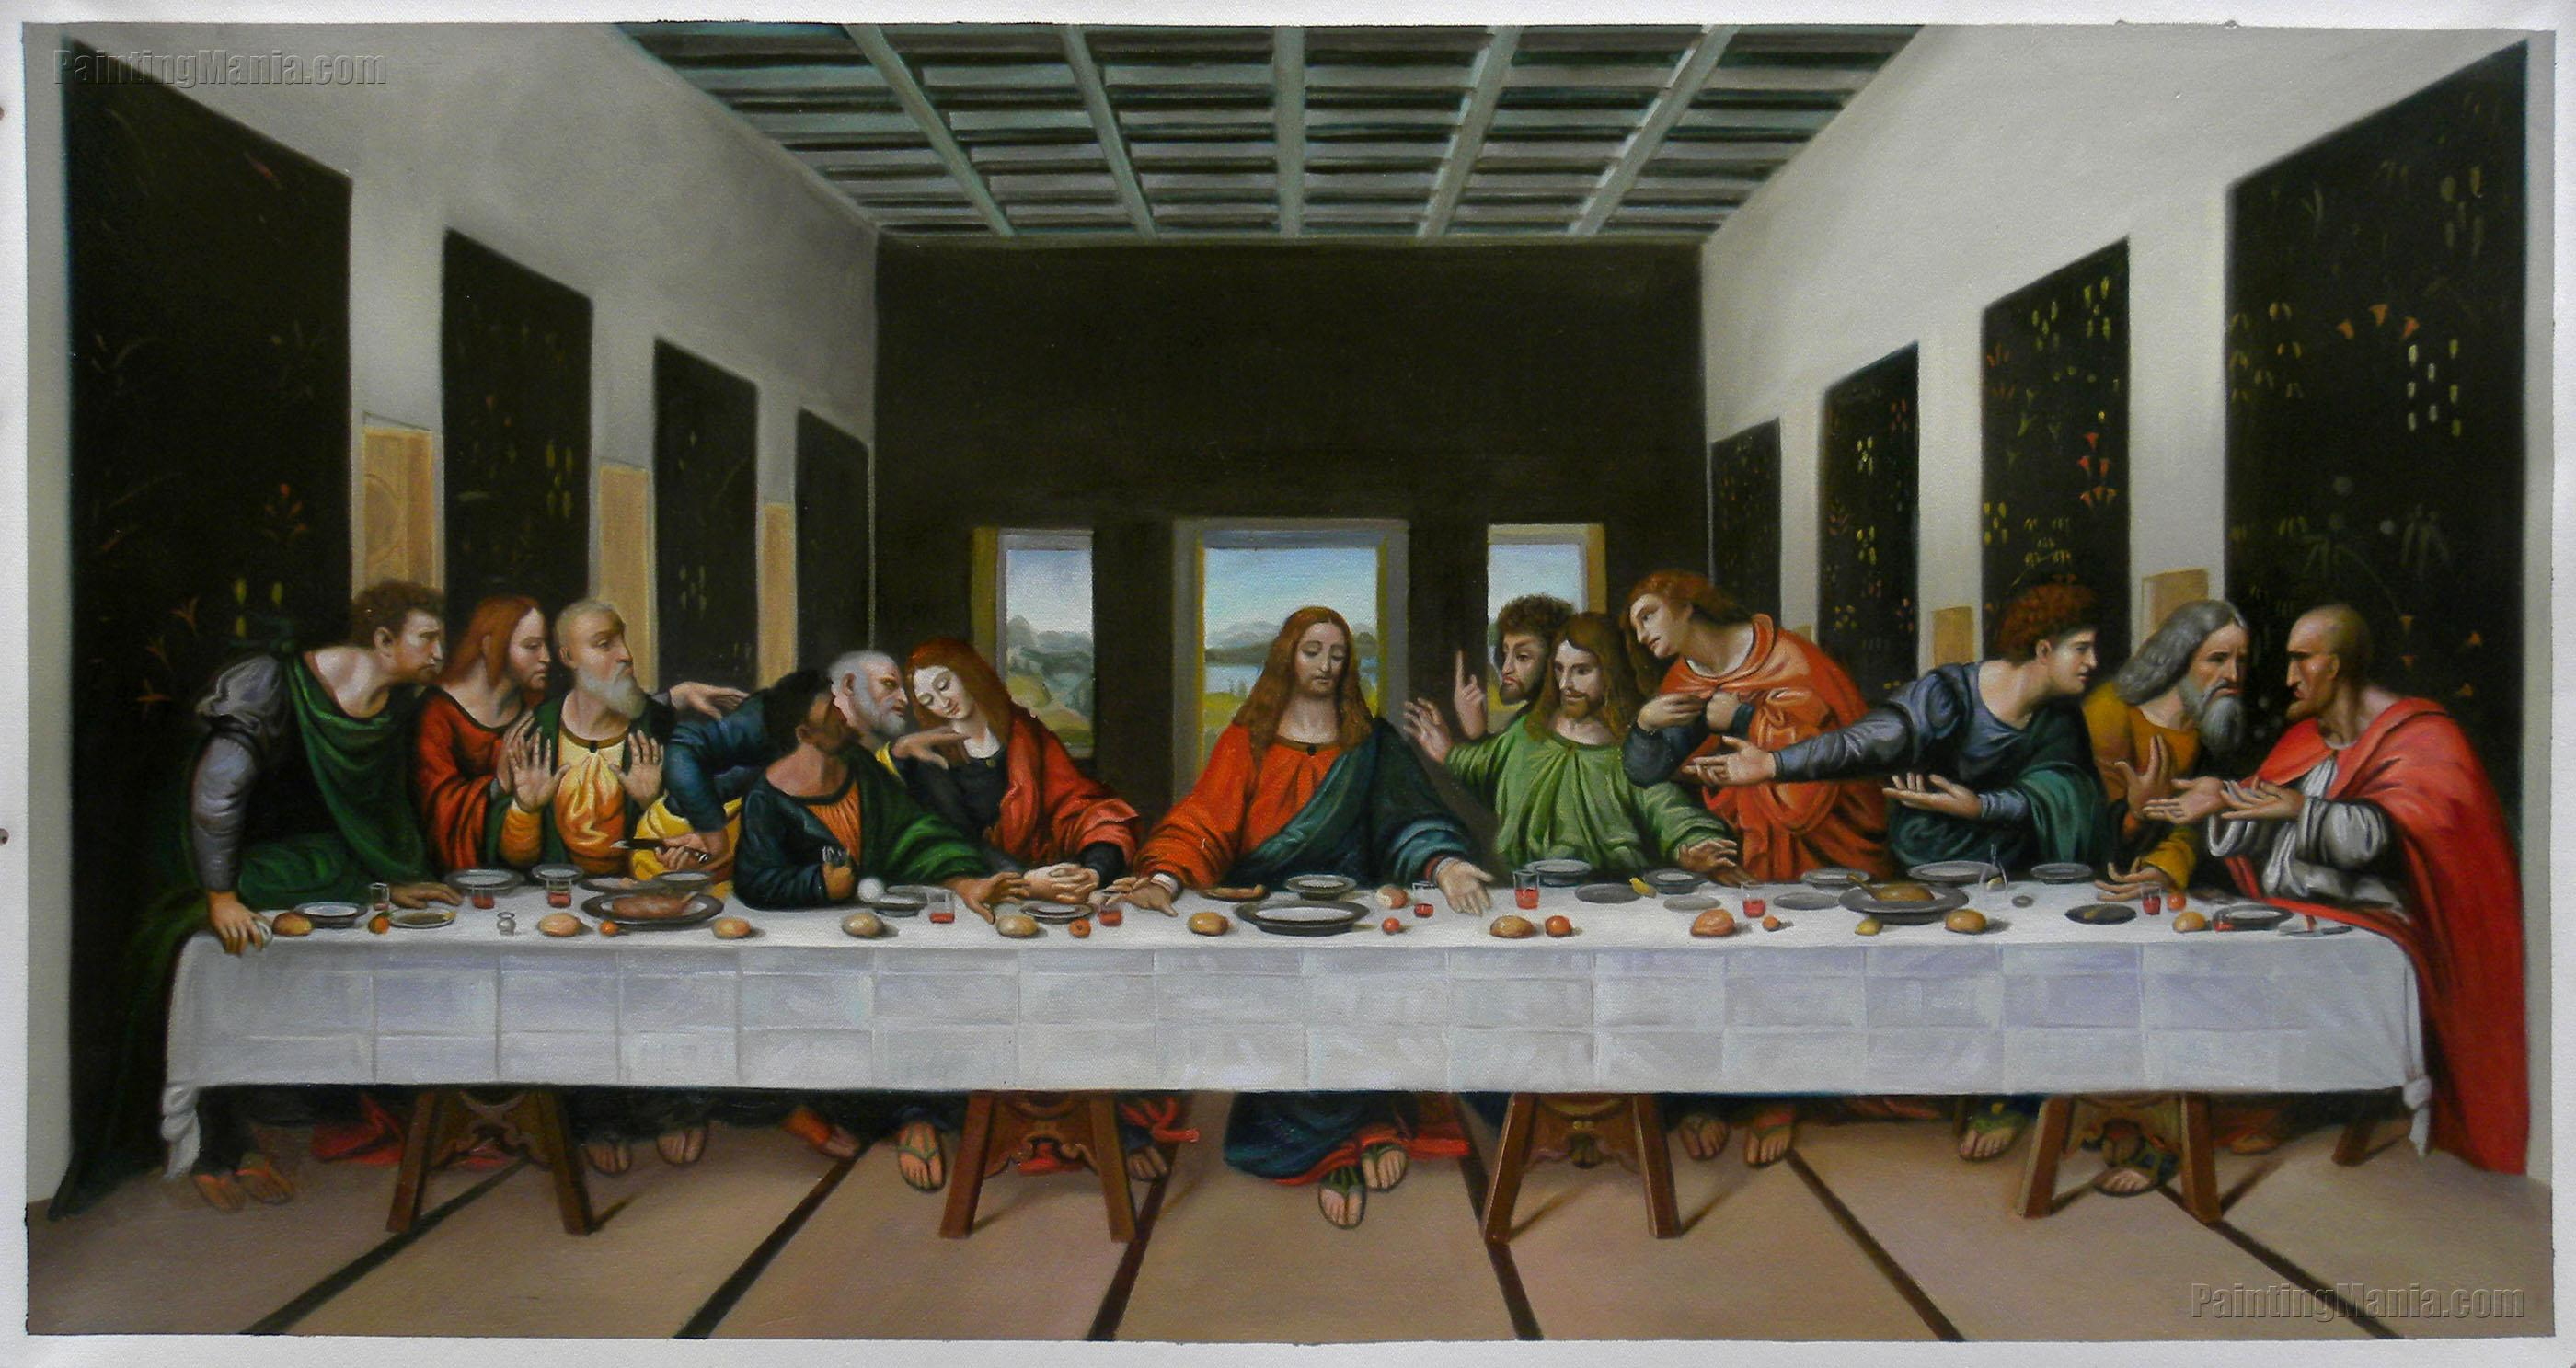 The Last Supper - Leonardo da Vinci Paintings